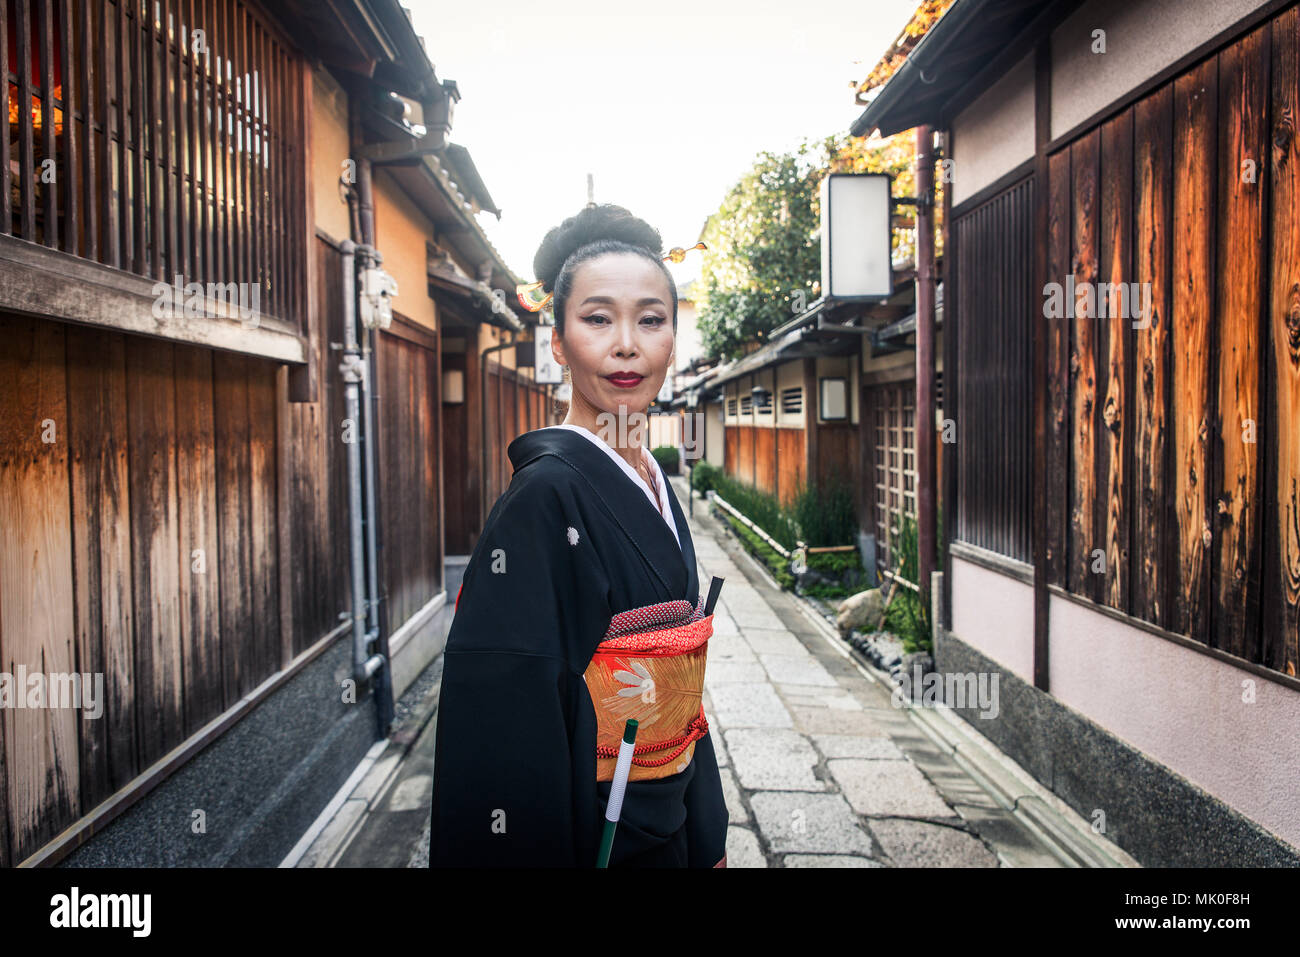 Japanese woman wearing traditional dress and walking outdoors - Stock Image